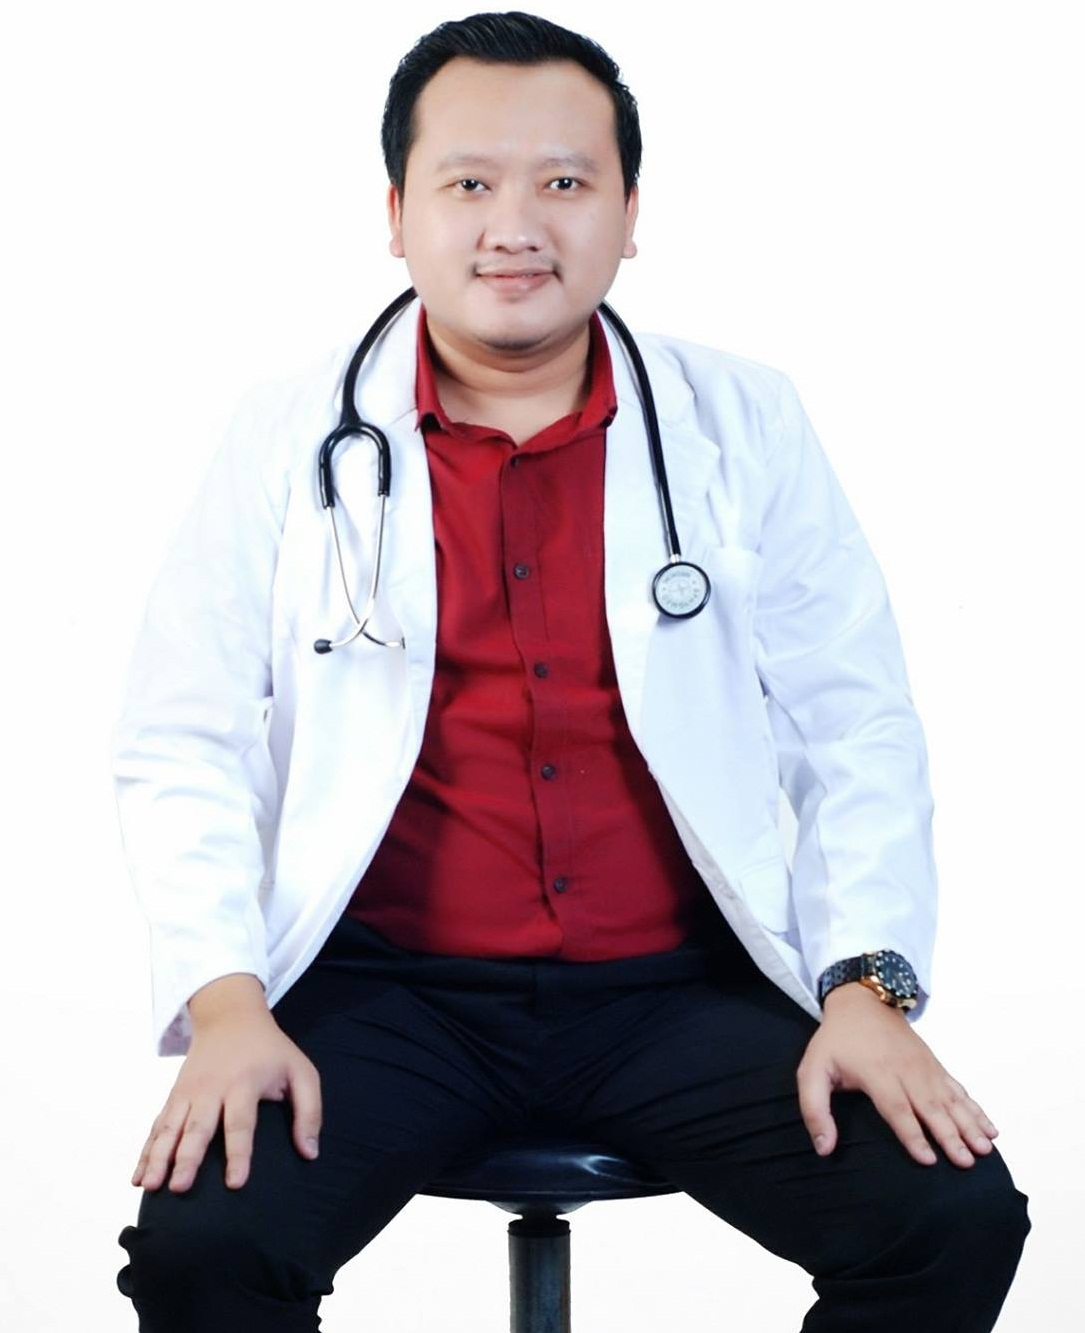 PROFIL DIREKTUR UTAMA   Drh. Alvin Paradiptya, M.Vet